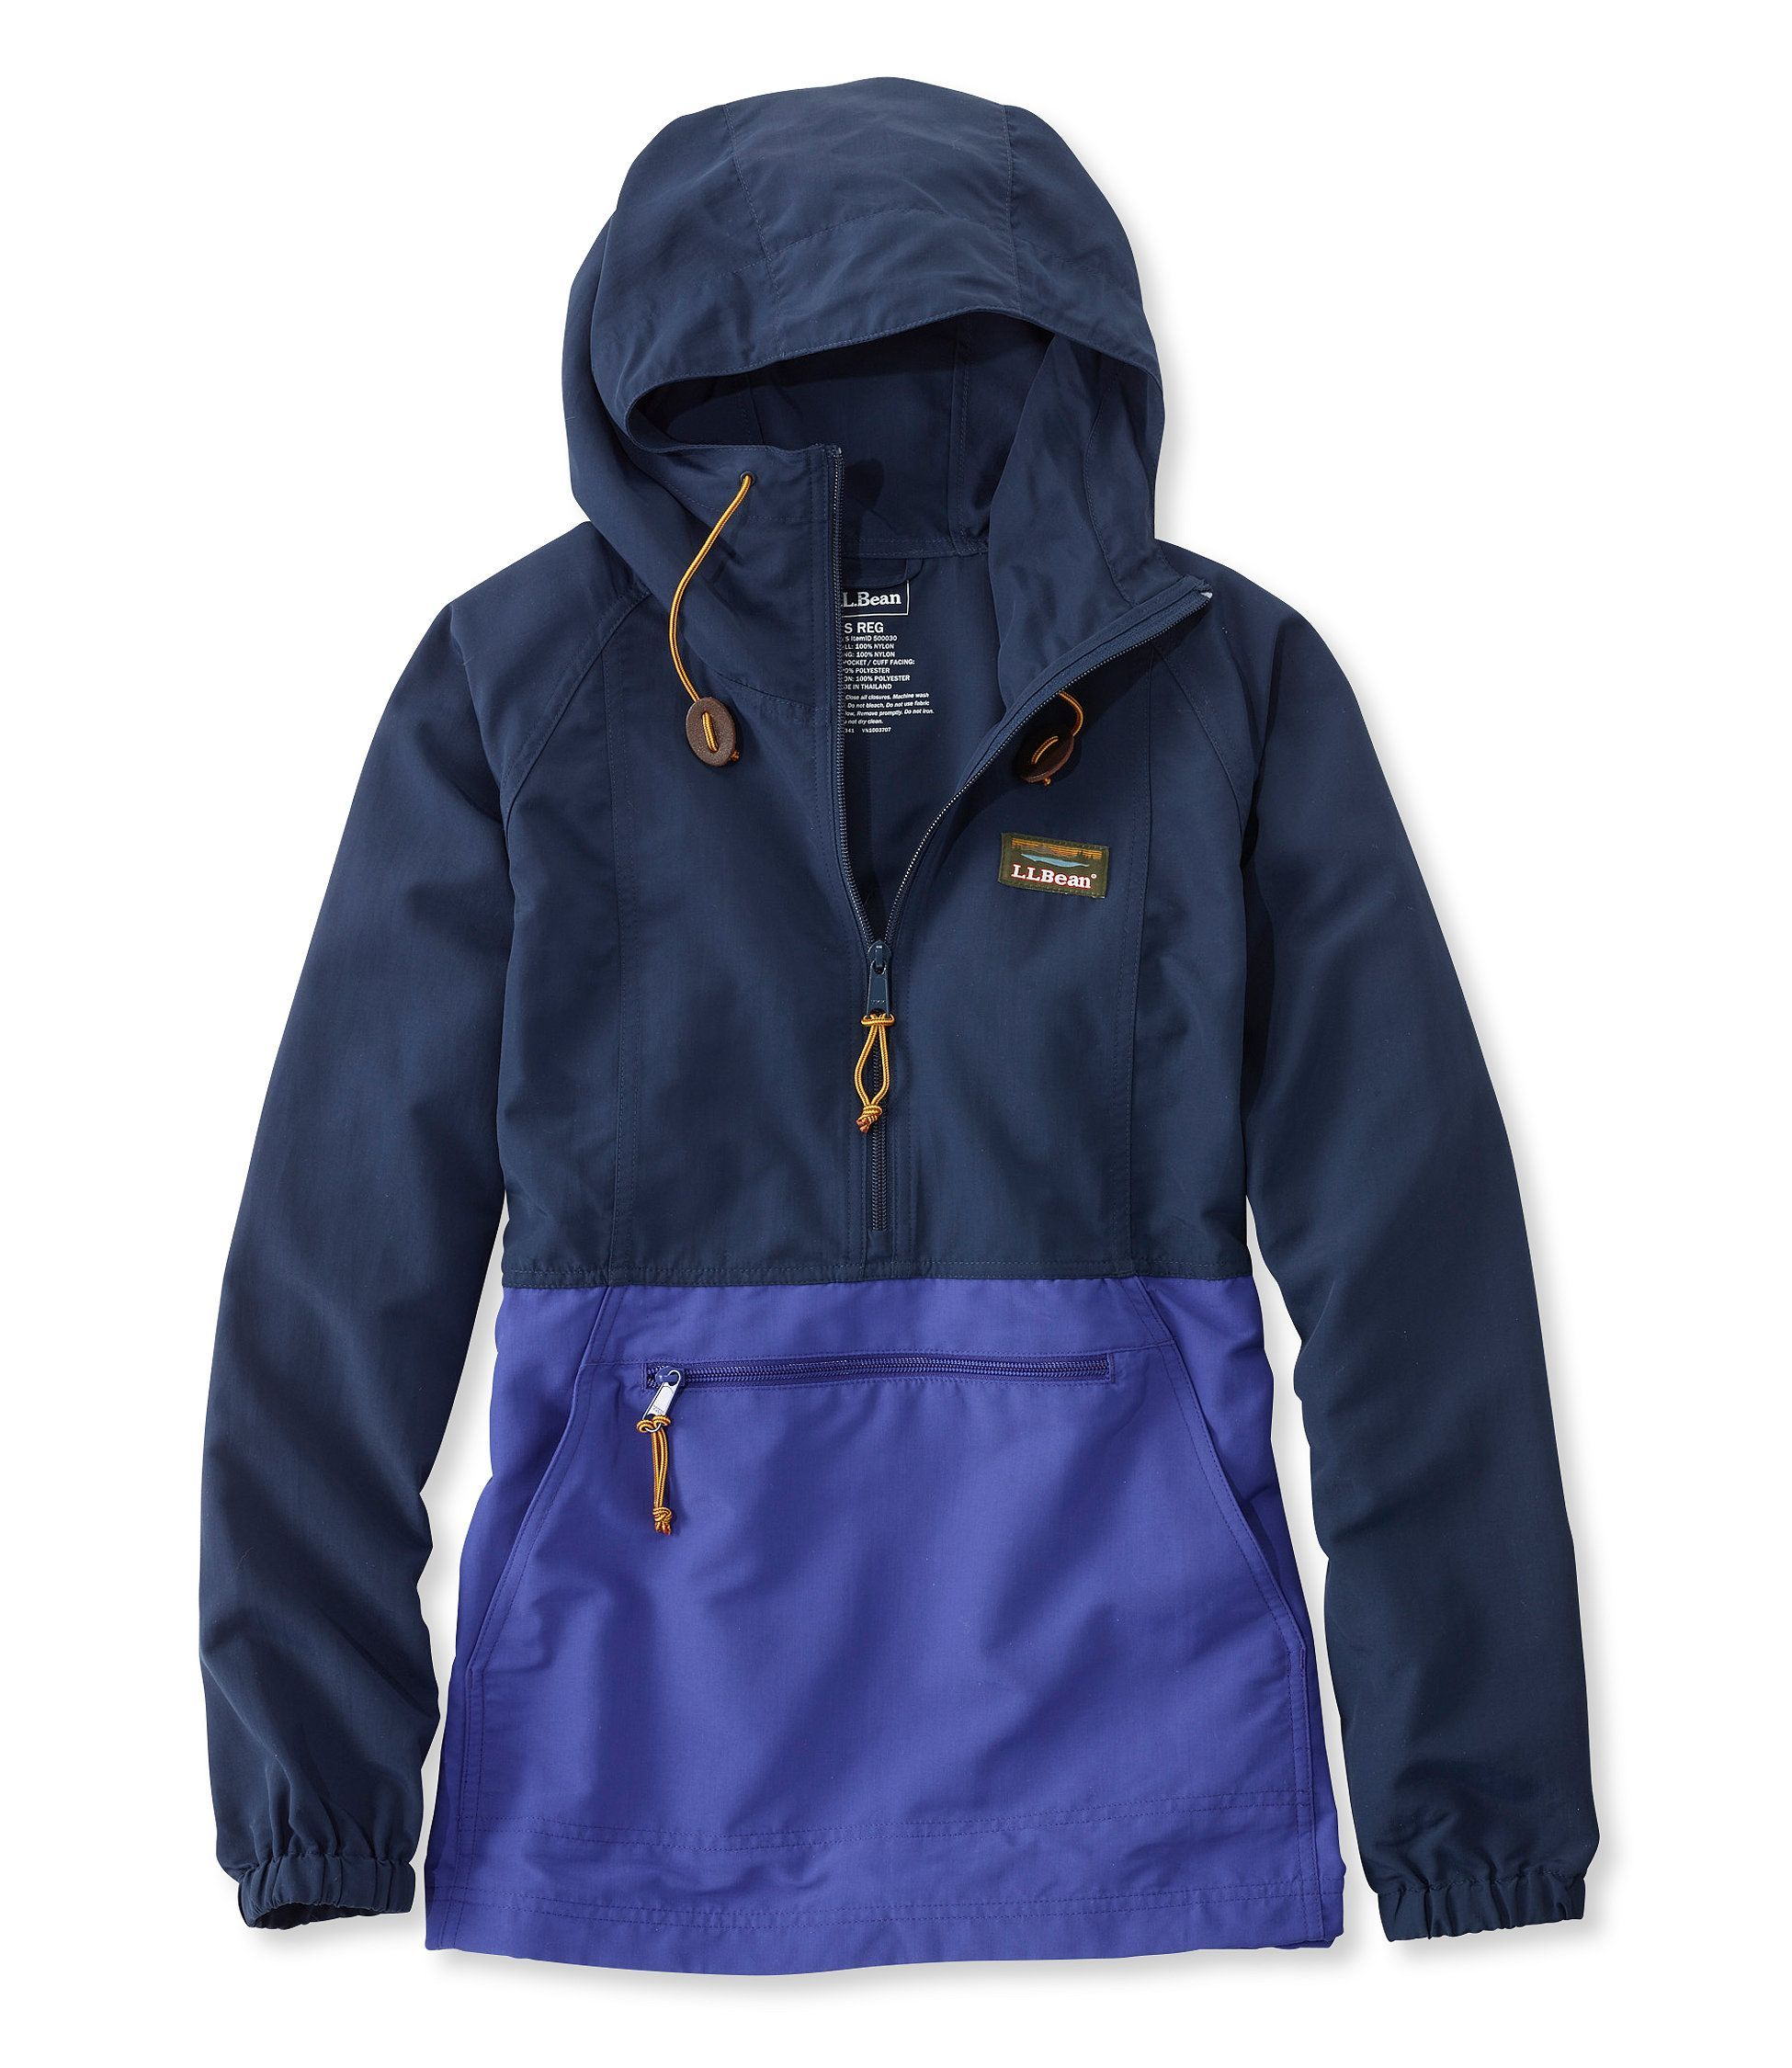 9e9cda38d7272 Our high quality Women's Outerwear and Jackets are thoughtfully designed  and built to last season after season.